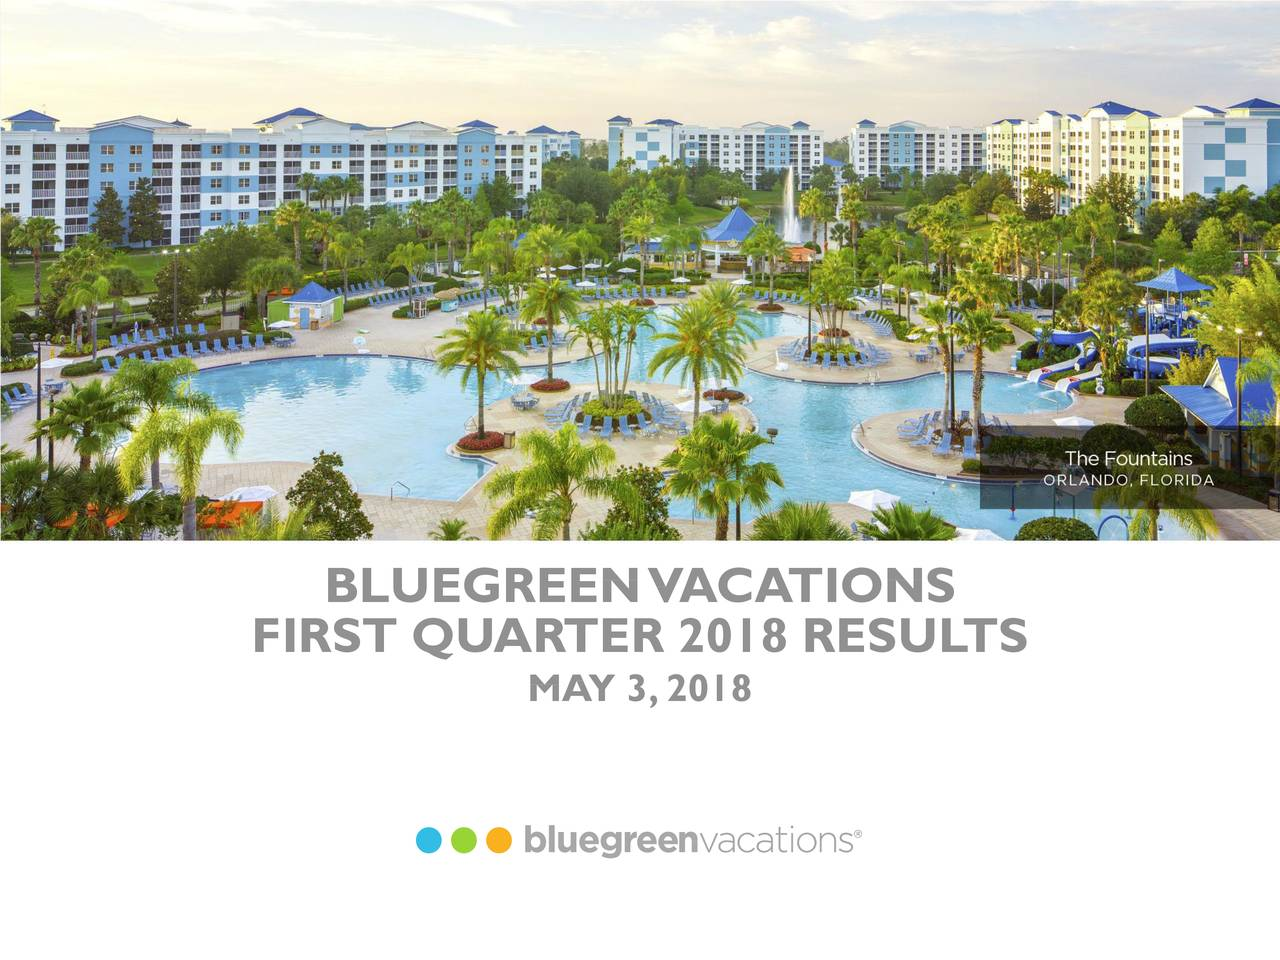 Not JustWhenYouAsk For It! BLUEGREENVACA TIONS FIRST QUARTER 2018 RESUL TS MAY 3,2018